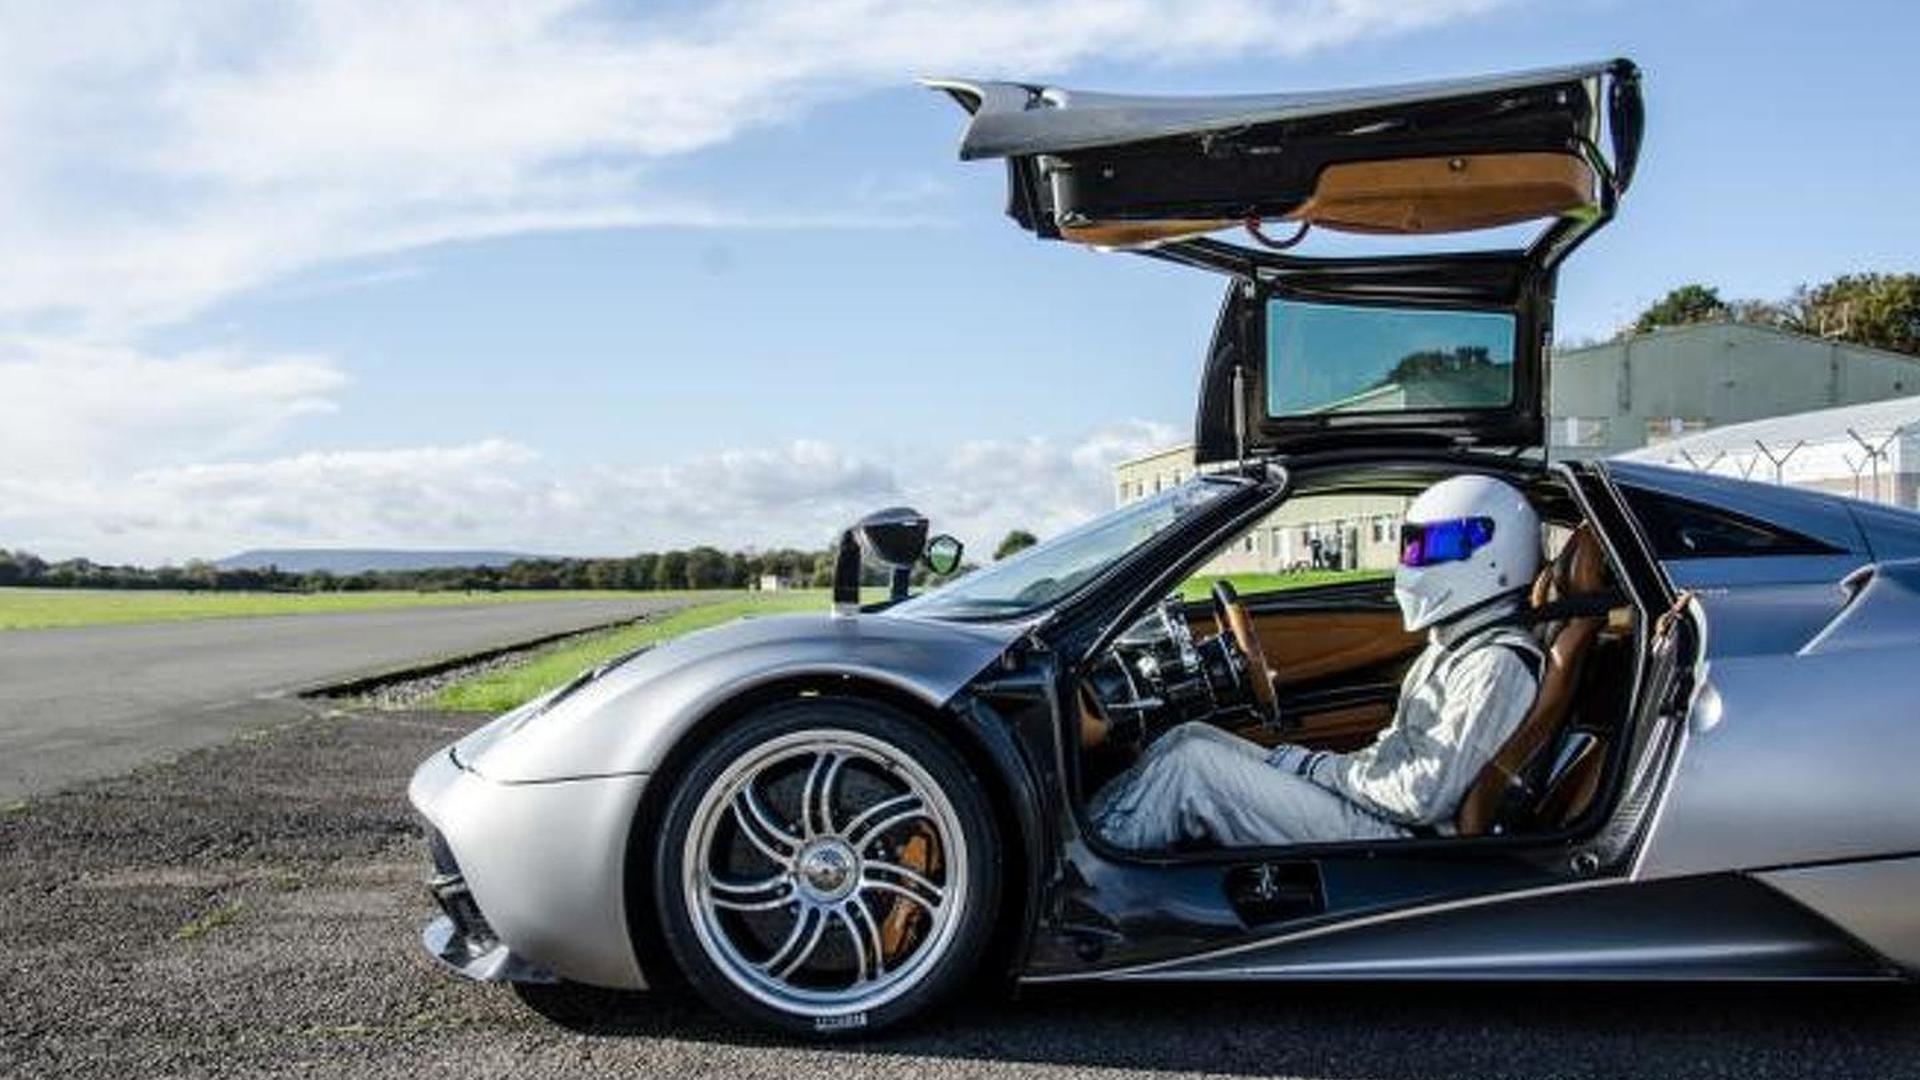 Pagani responds to accusations of cheating on Top Gear